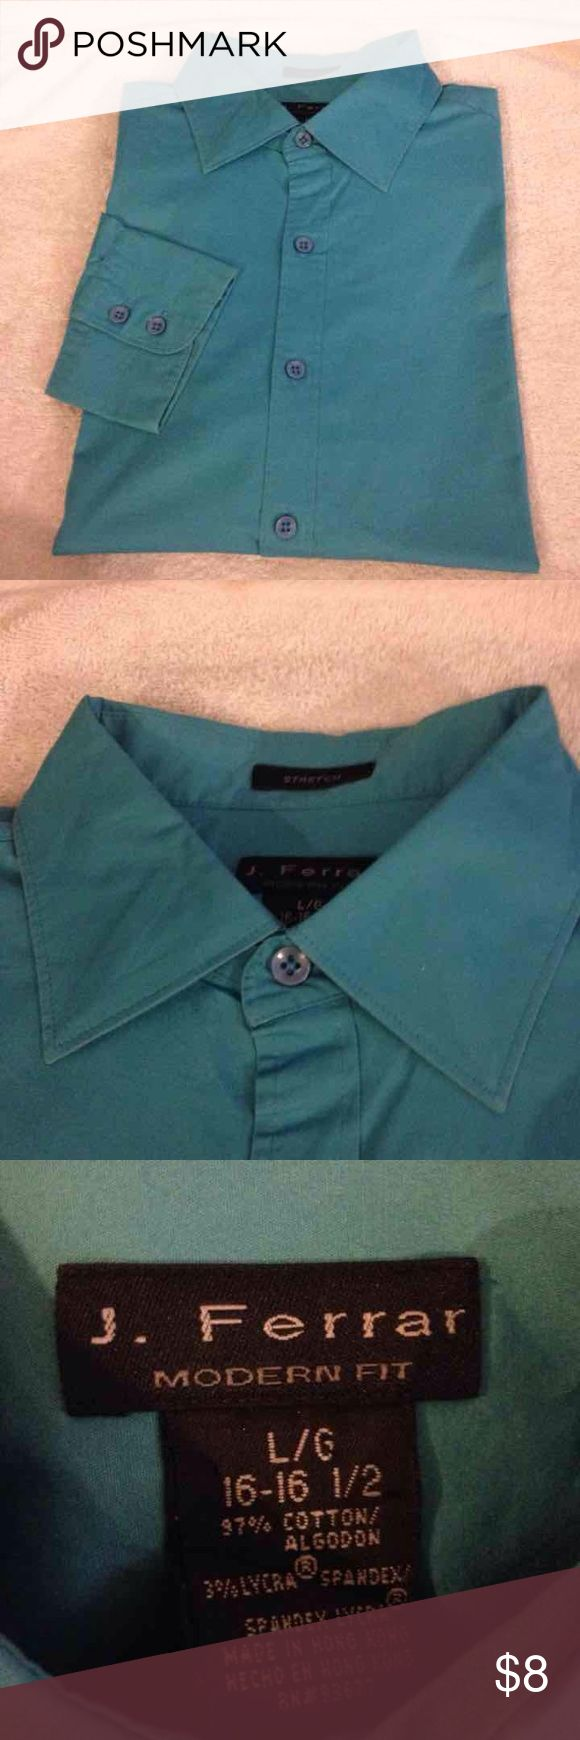 J Ferrar Solid Teal Turquoise Shirt L 16-16.5 J Ferrar Solid Teal Turquoise Modern Tailored Fit Dress Shirt size 16-16.5 34/35! Great condition! I welcome offers and love bundling! Just post in the comments what items you want and I will combine them for you with the deal and one shipping price! J. Ferrar Shirts Dress Shirts